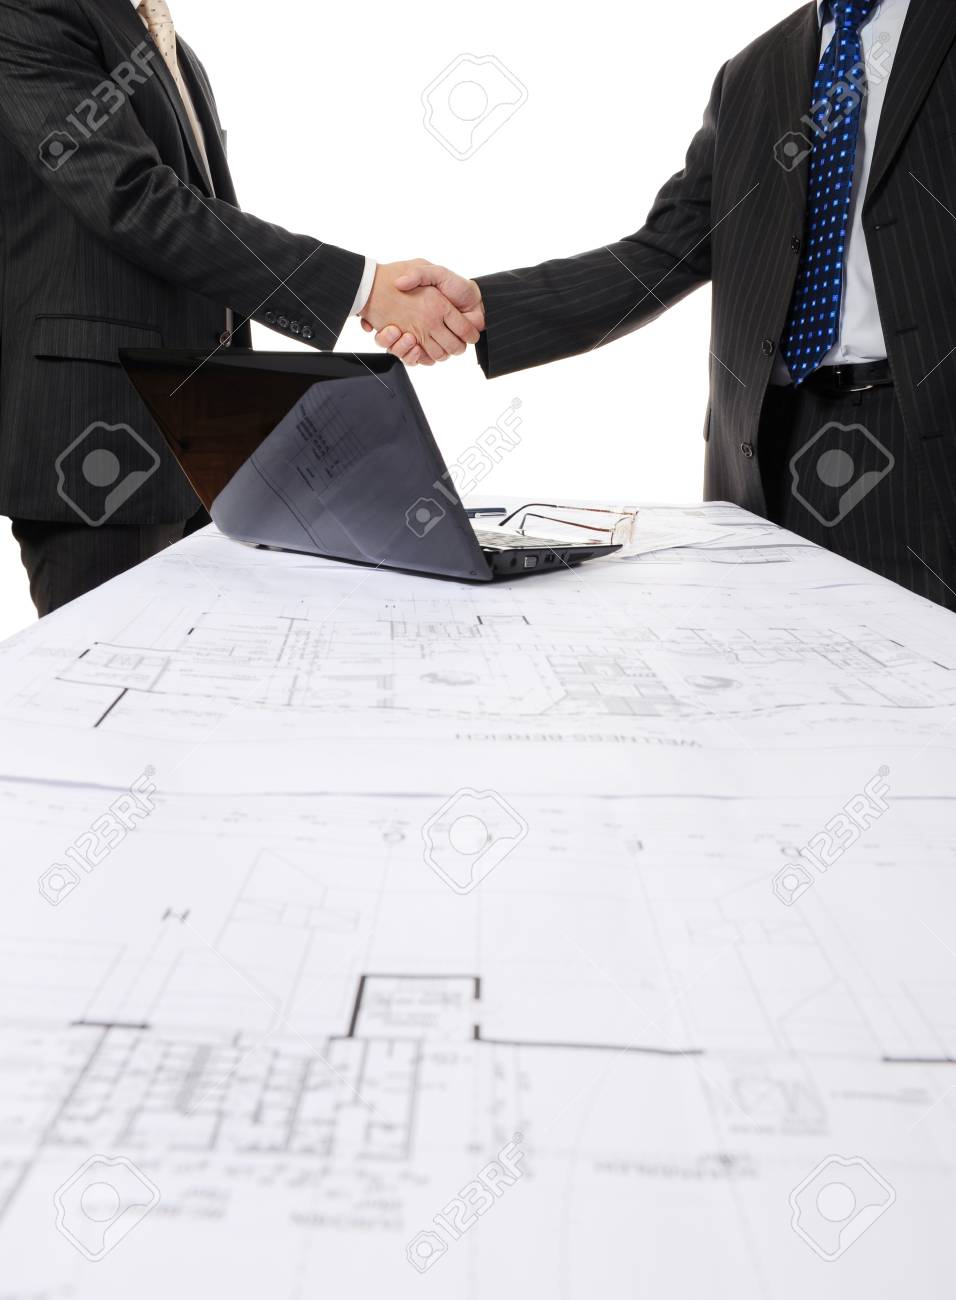 Handshake of two business partners after signing a contract. Focus on the documents Stock Photo - 8404338